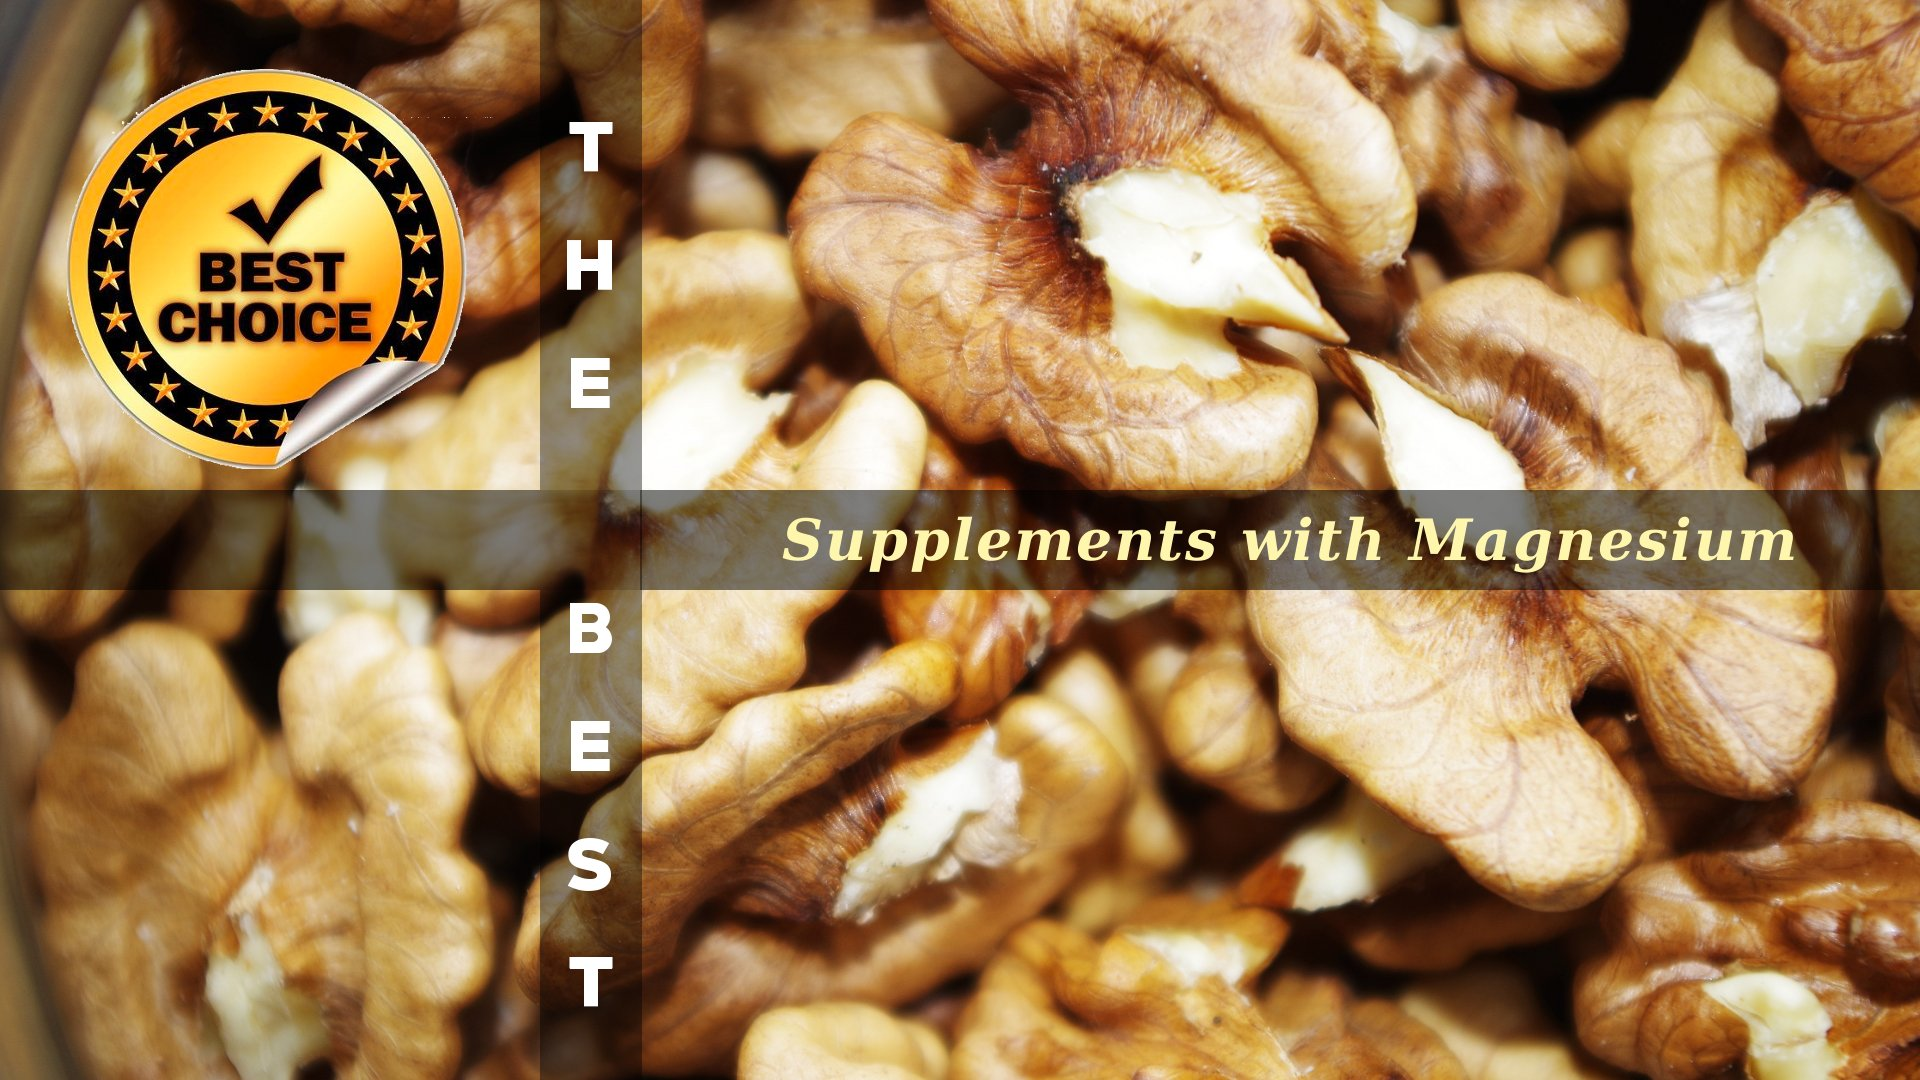 The Supplements with Magnesium